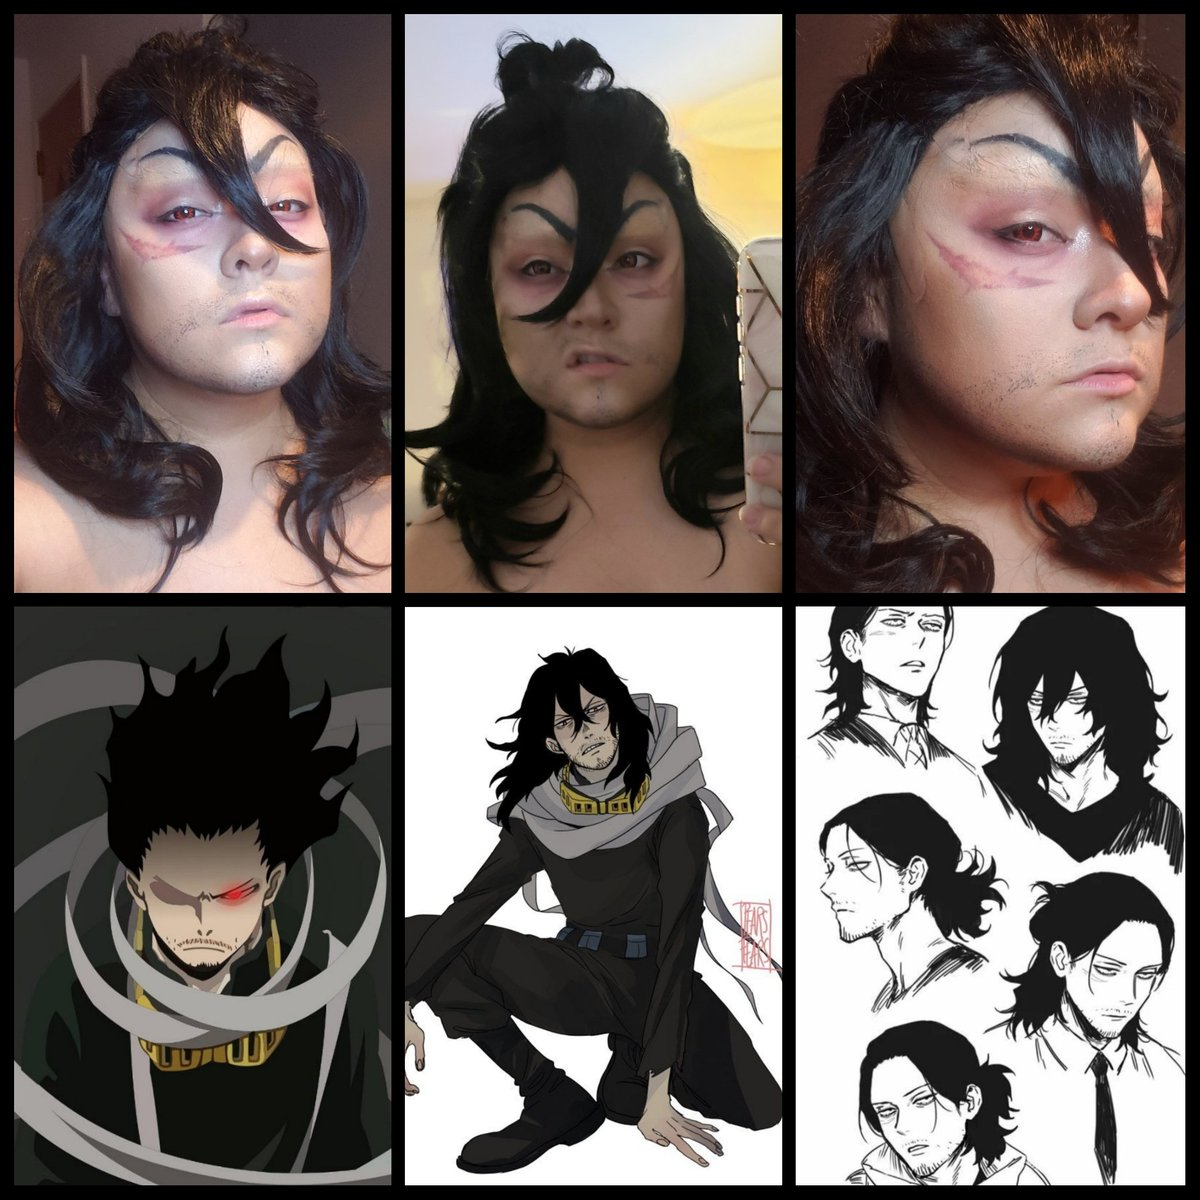 Who else is going to @PAXSouth this weekend? Here's a makeup test for my new cosplay and very first crossplay  Aizawa from My Hero Academia  Makeup by @sharonmacoochee #PAXSouth2020 #costest #aizawashouta #MyHeroAcademia #crossplay pic.twitter.com/BXLgsbSAma